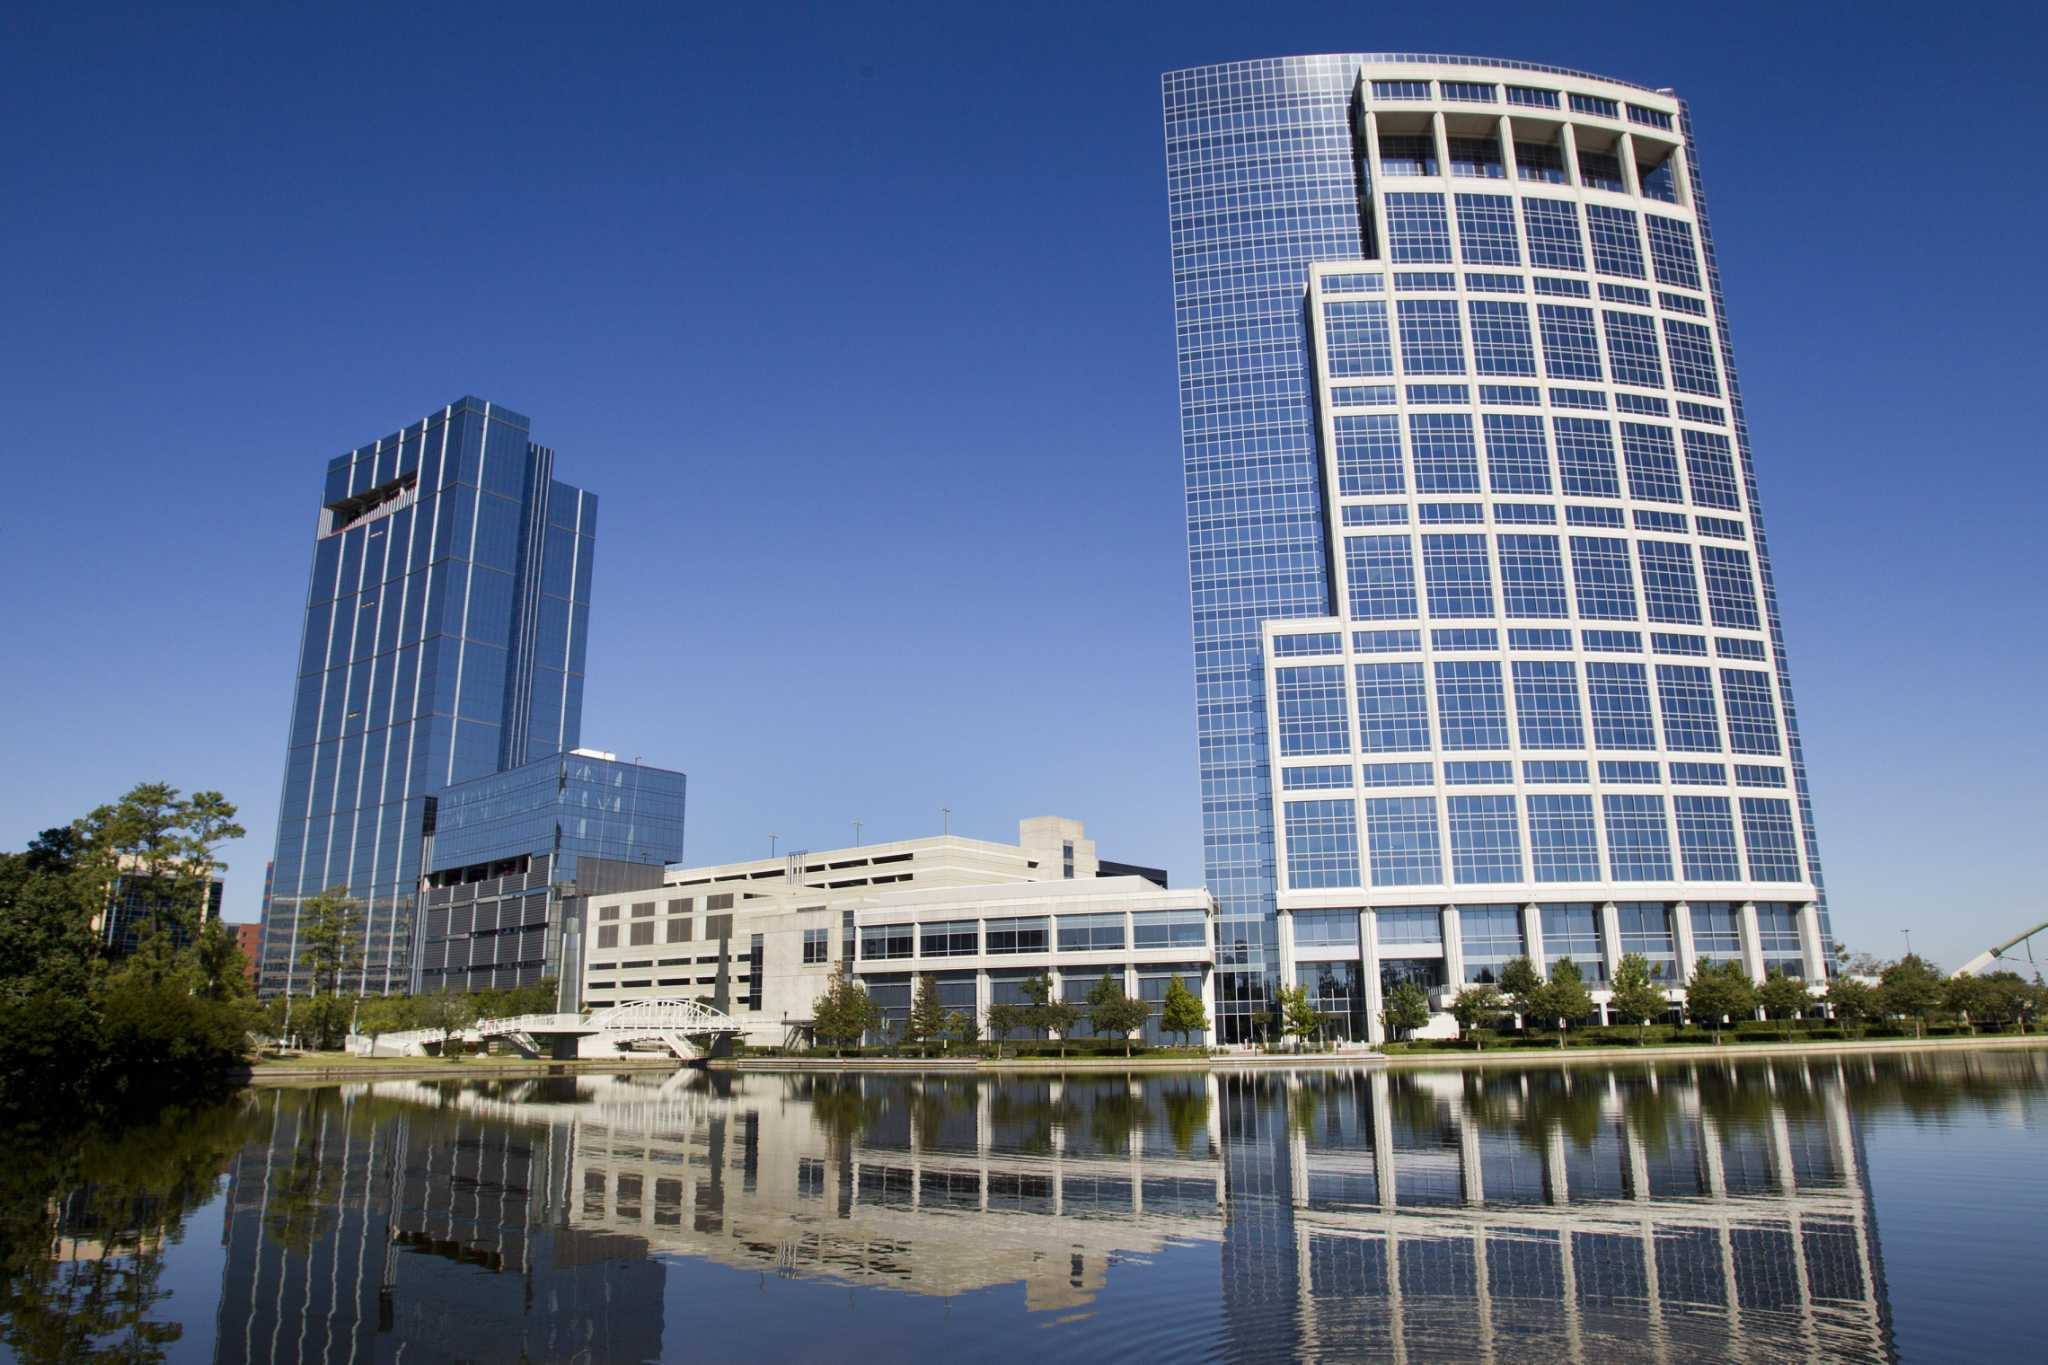 Oxy HQ move put on hold during Anadarko deal